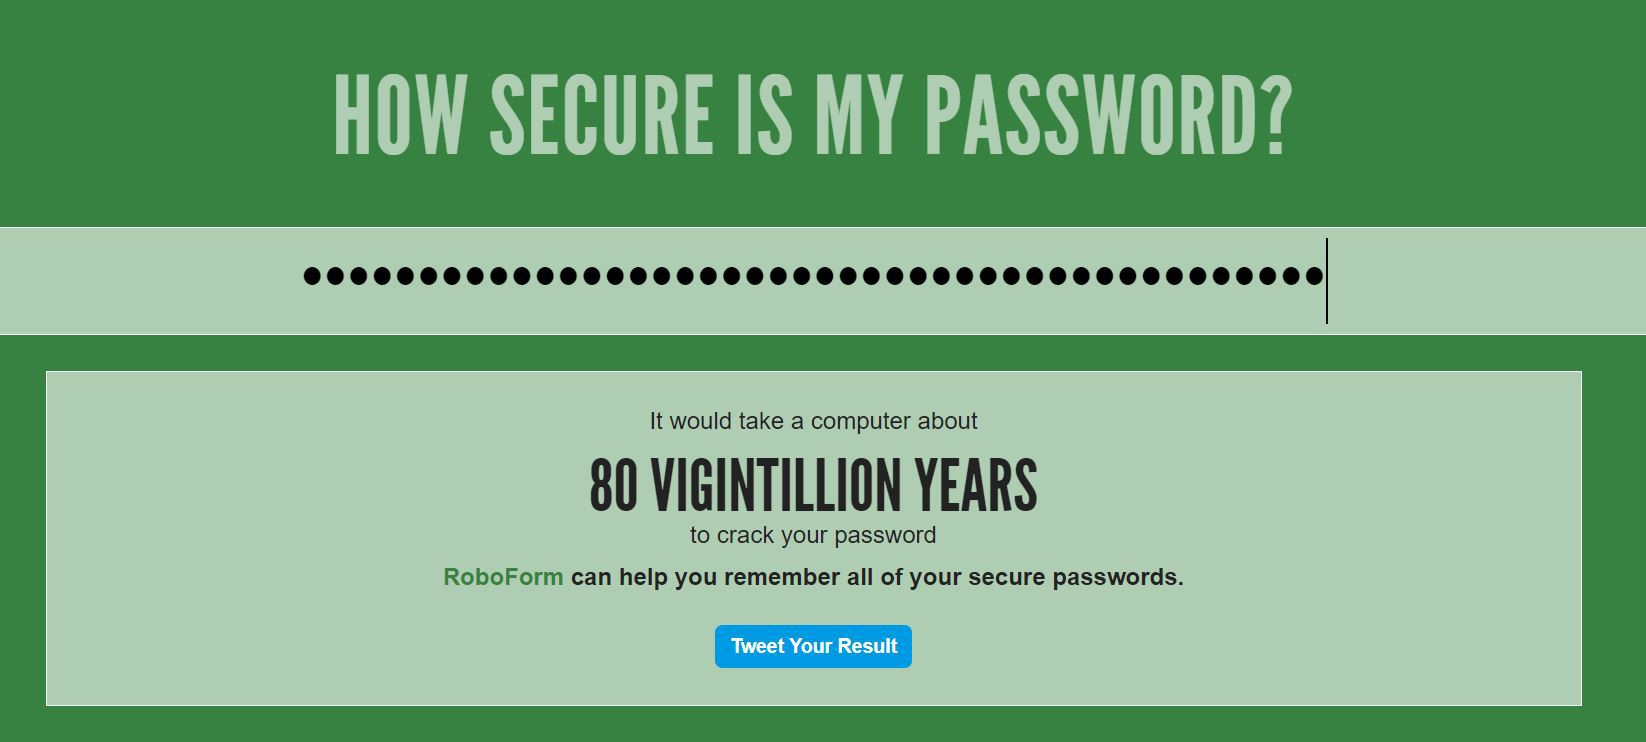 How to Protect Yourself Online: A Simple Guide location-independence